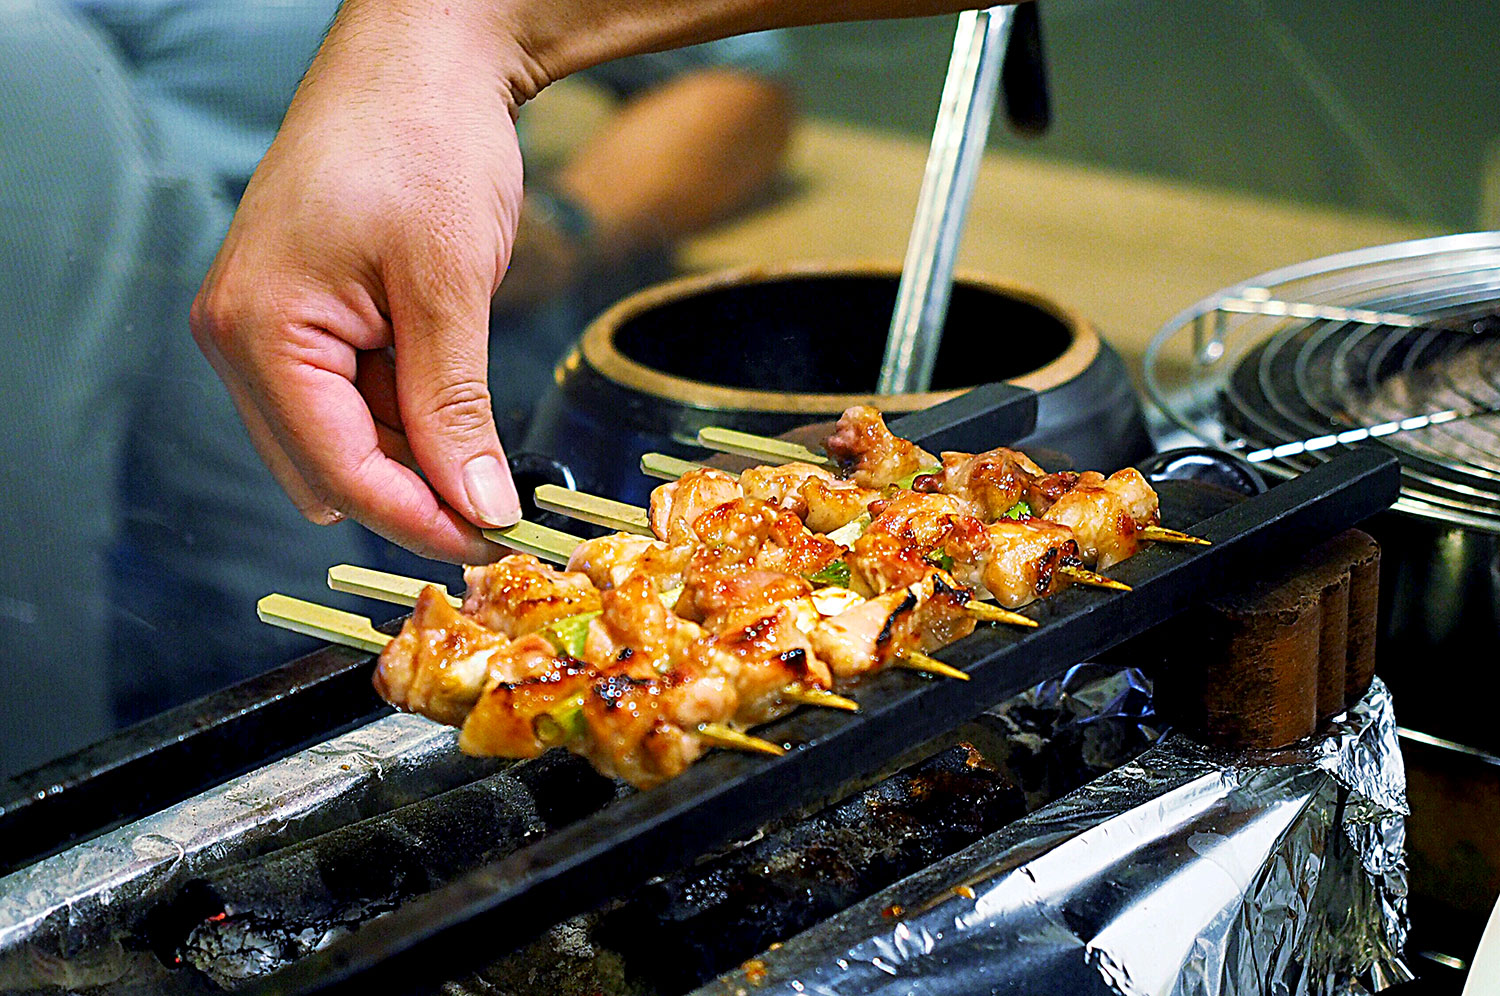 Skewers getting barbecued, Yurippi, Crows Nest: Sydney Food Blog Review